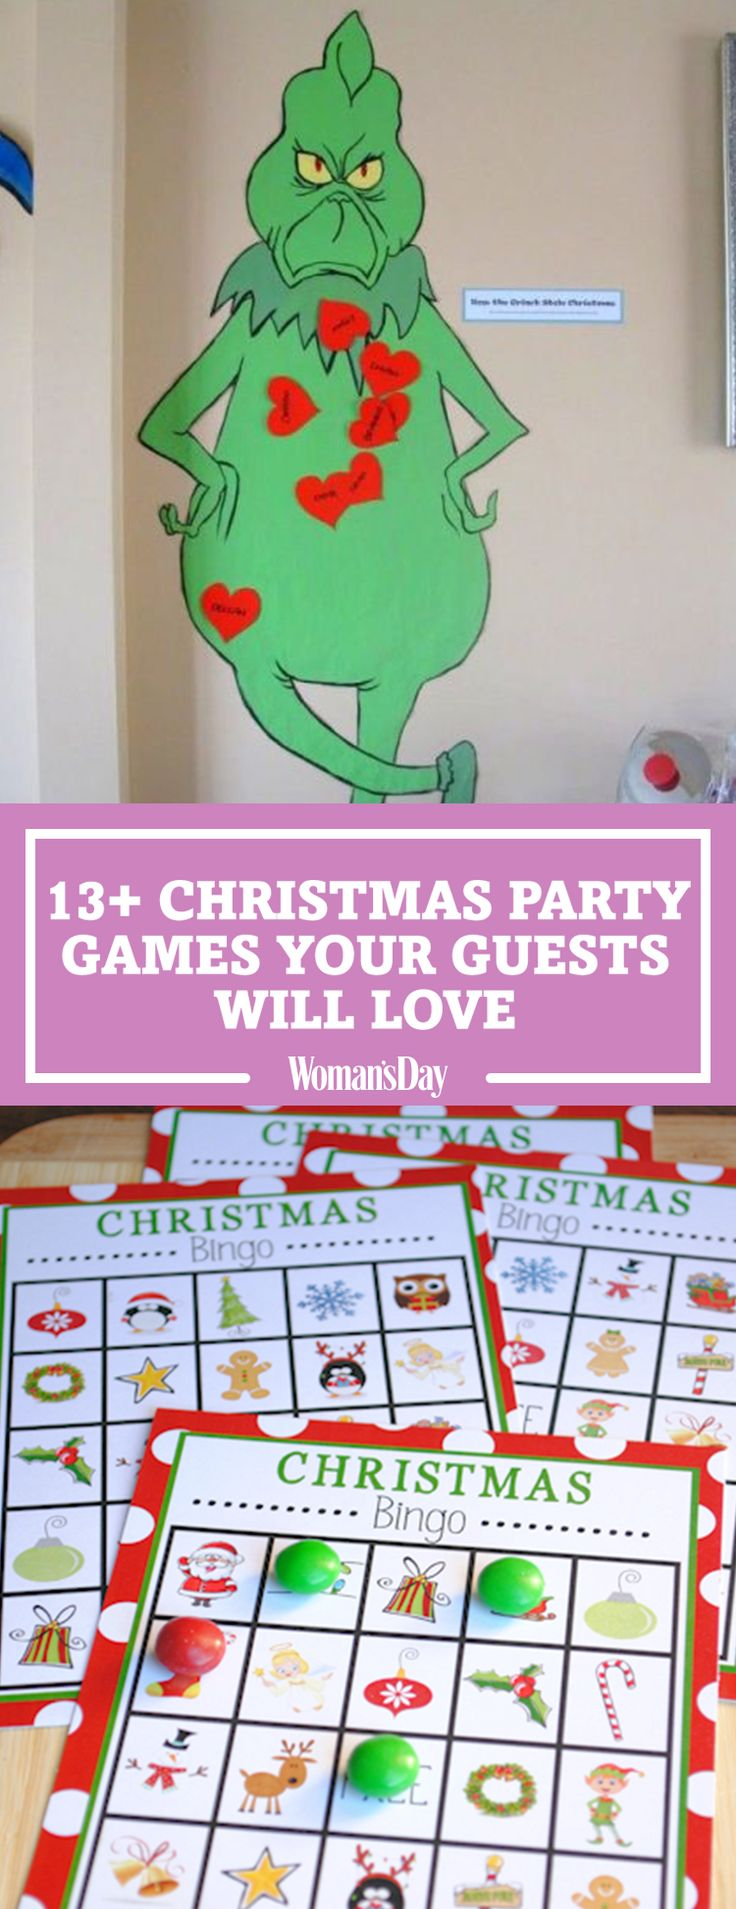 56 best Party Games images on Pinterest | Birthdays, Birthday party ...